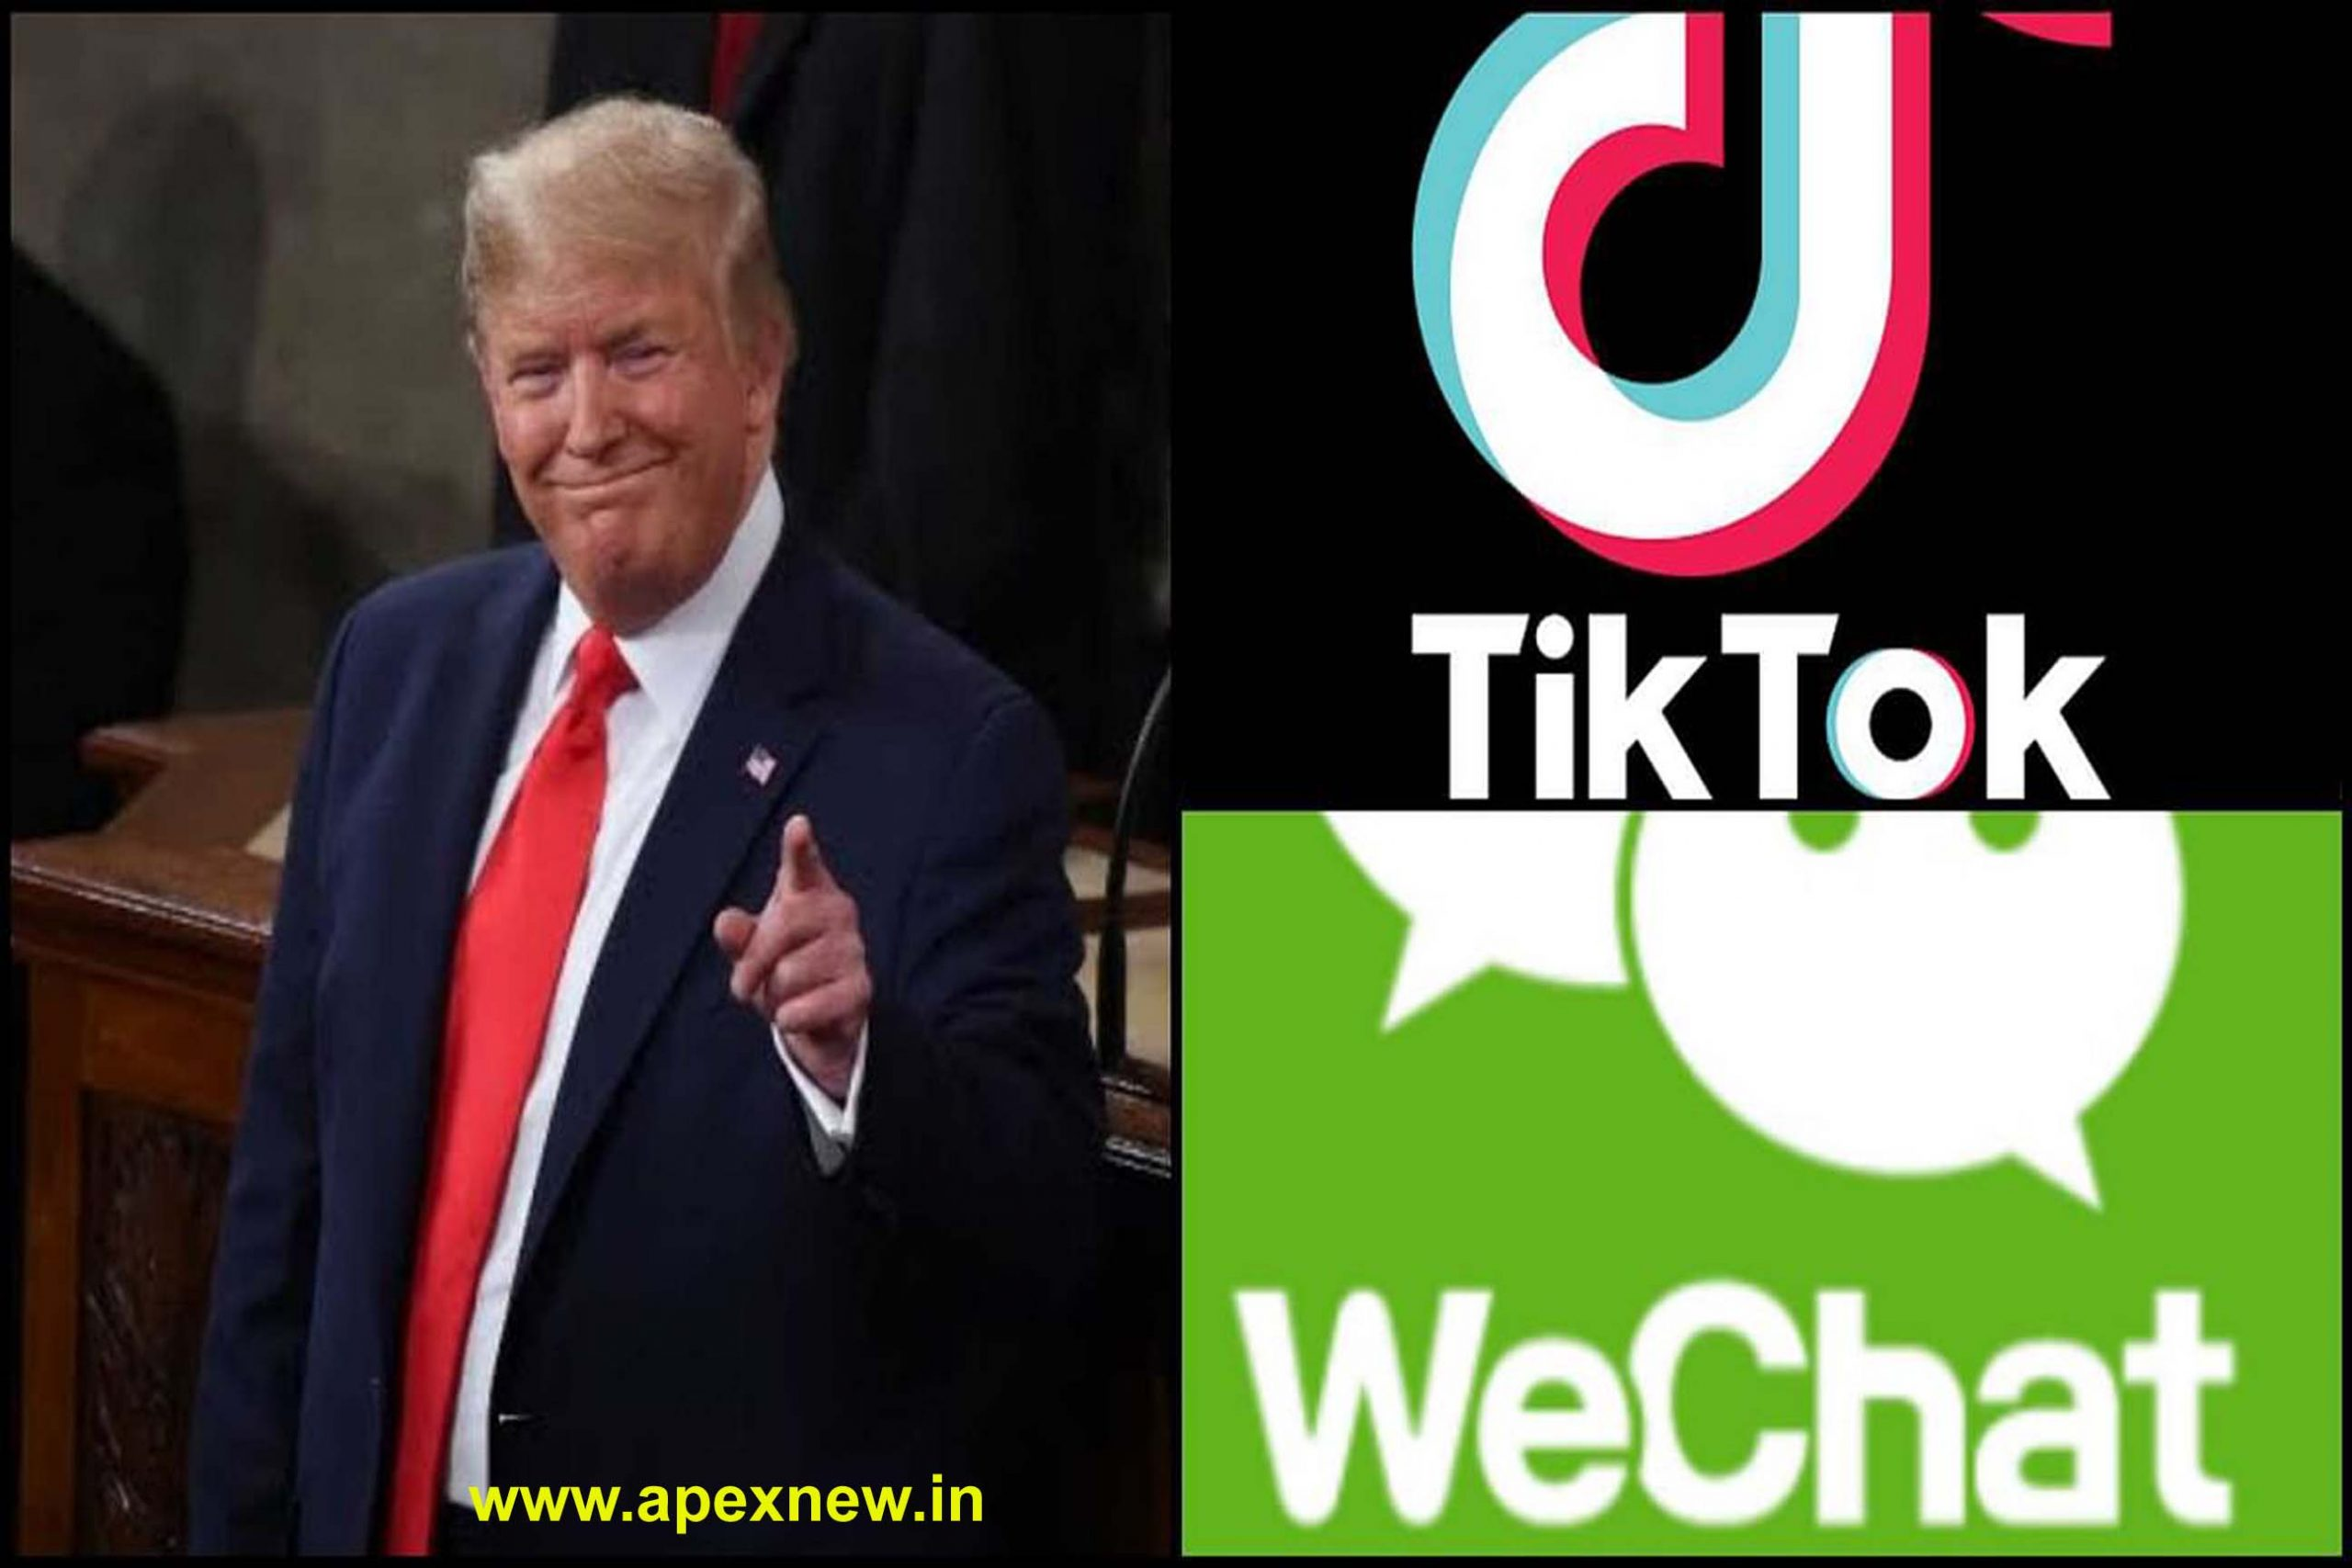 Tik tok and wechat are banned in America